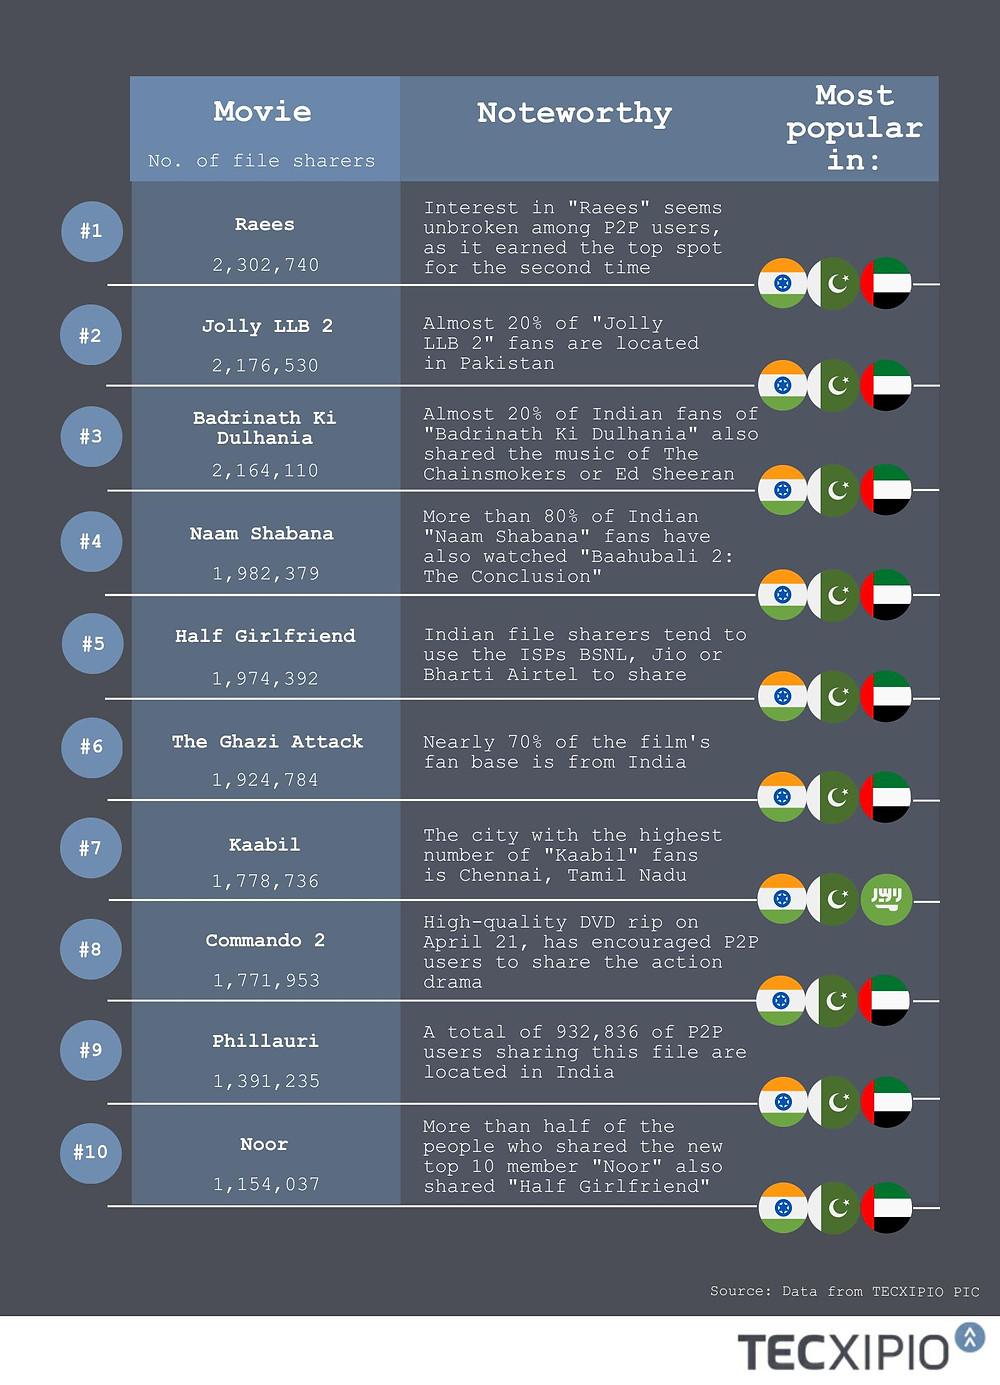 TECXIPIO infographic about the top 10 Bollywood Hindi movies worldwide. The rankings are based on the number of file sharers for Bollywood Hindi movies released in 2017